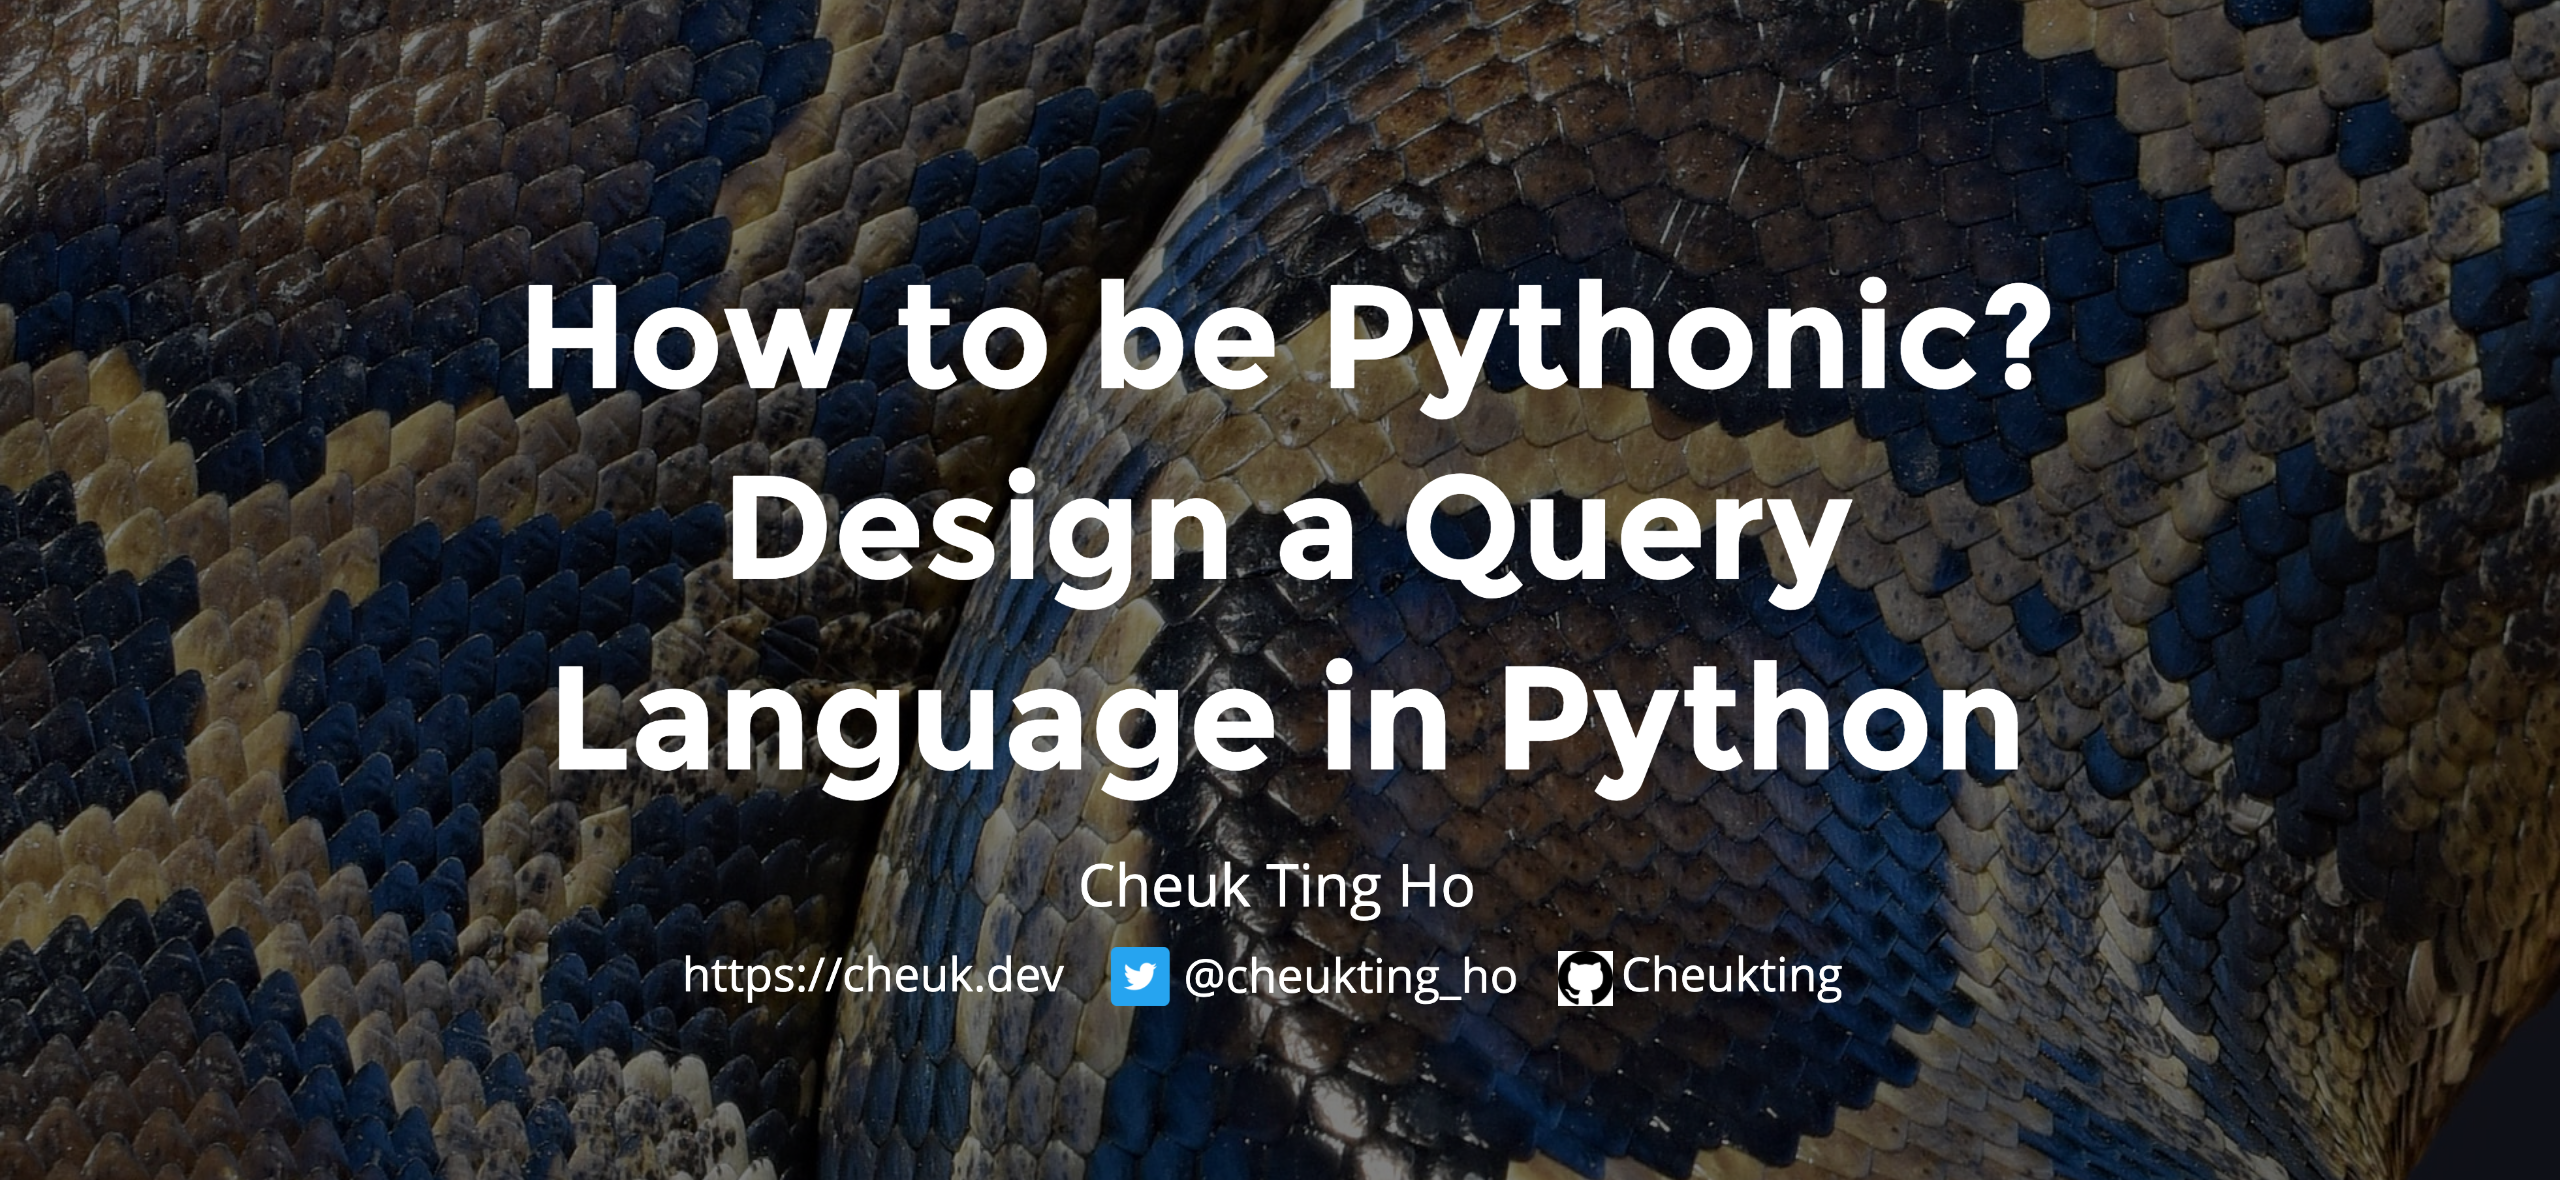 How to be Pythonic? Design a Query Language in Python